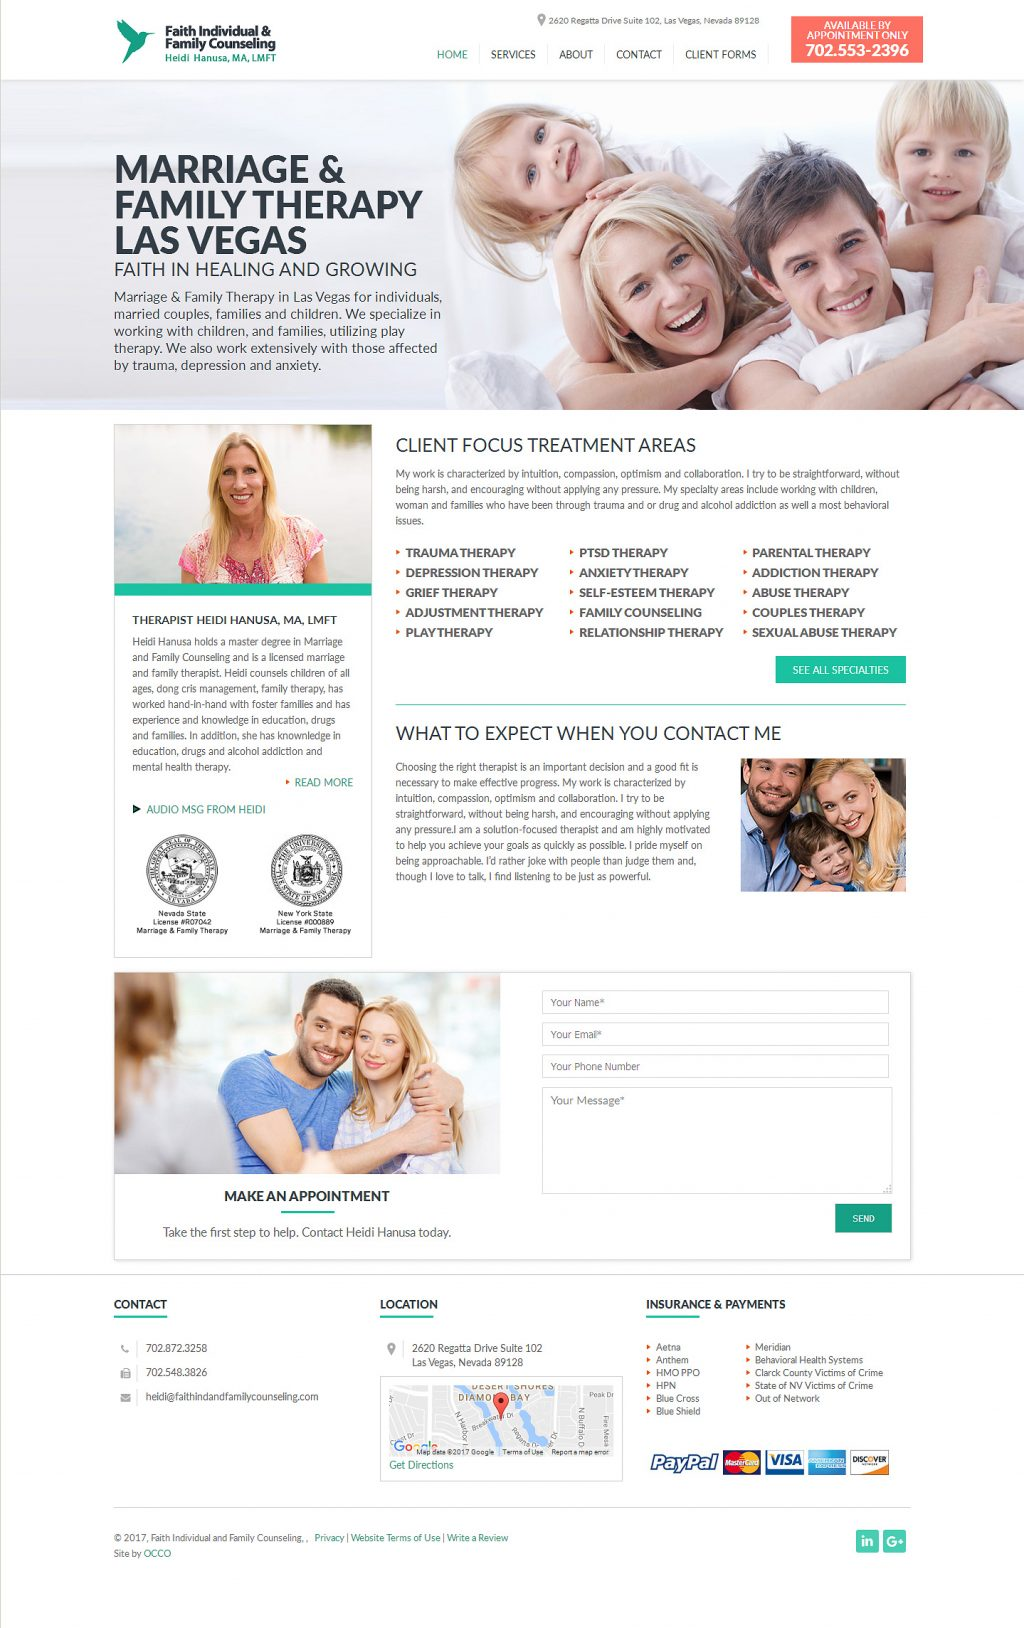 Website for Therapists – FaithIndividualCounseling